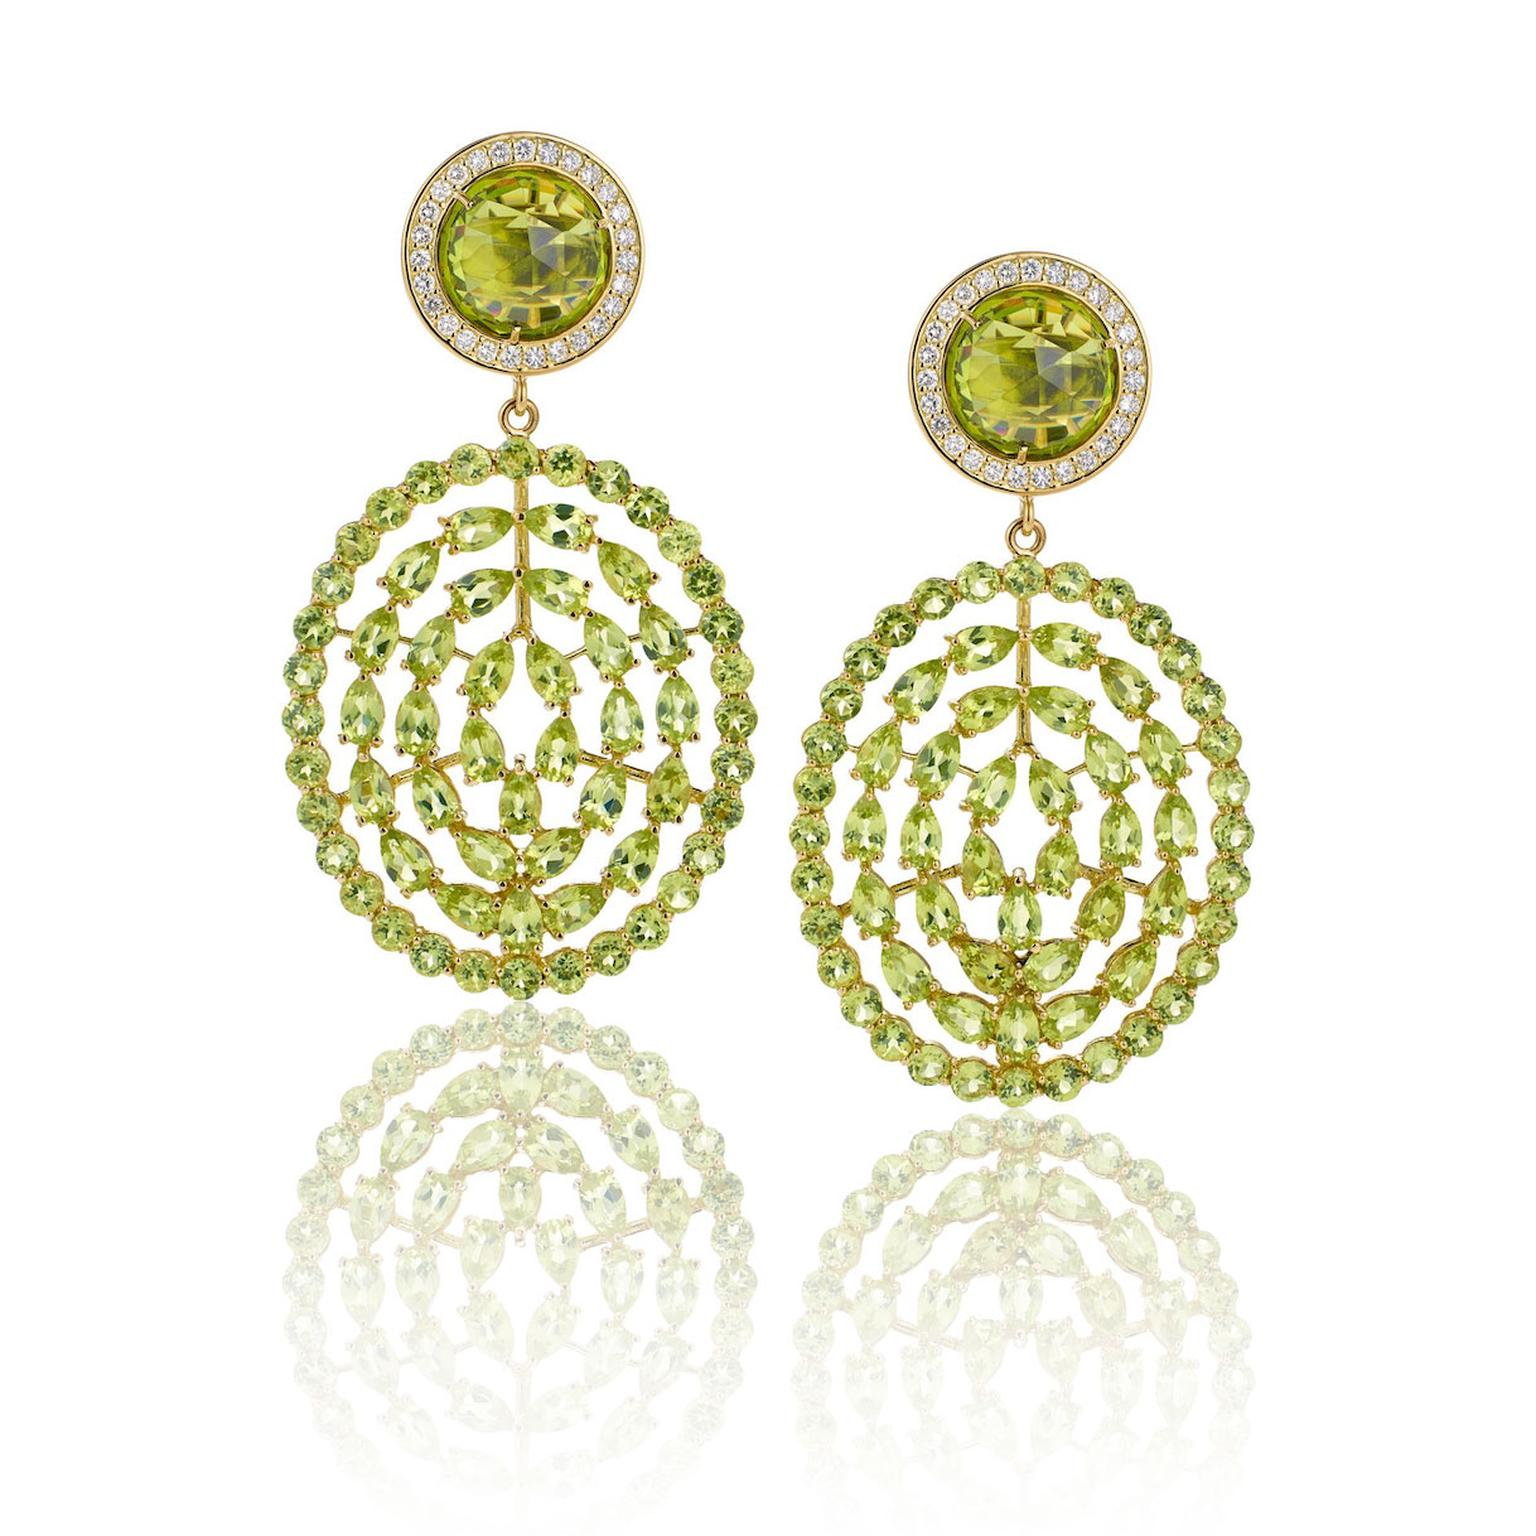 Misahara's Plima peridot earrings